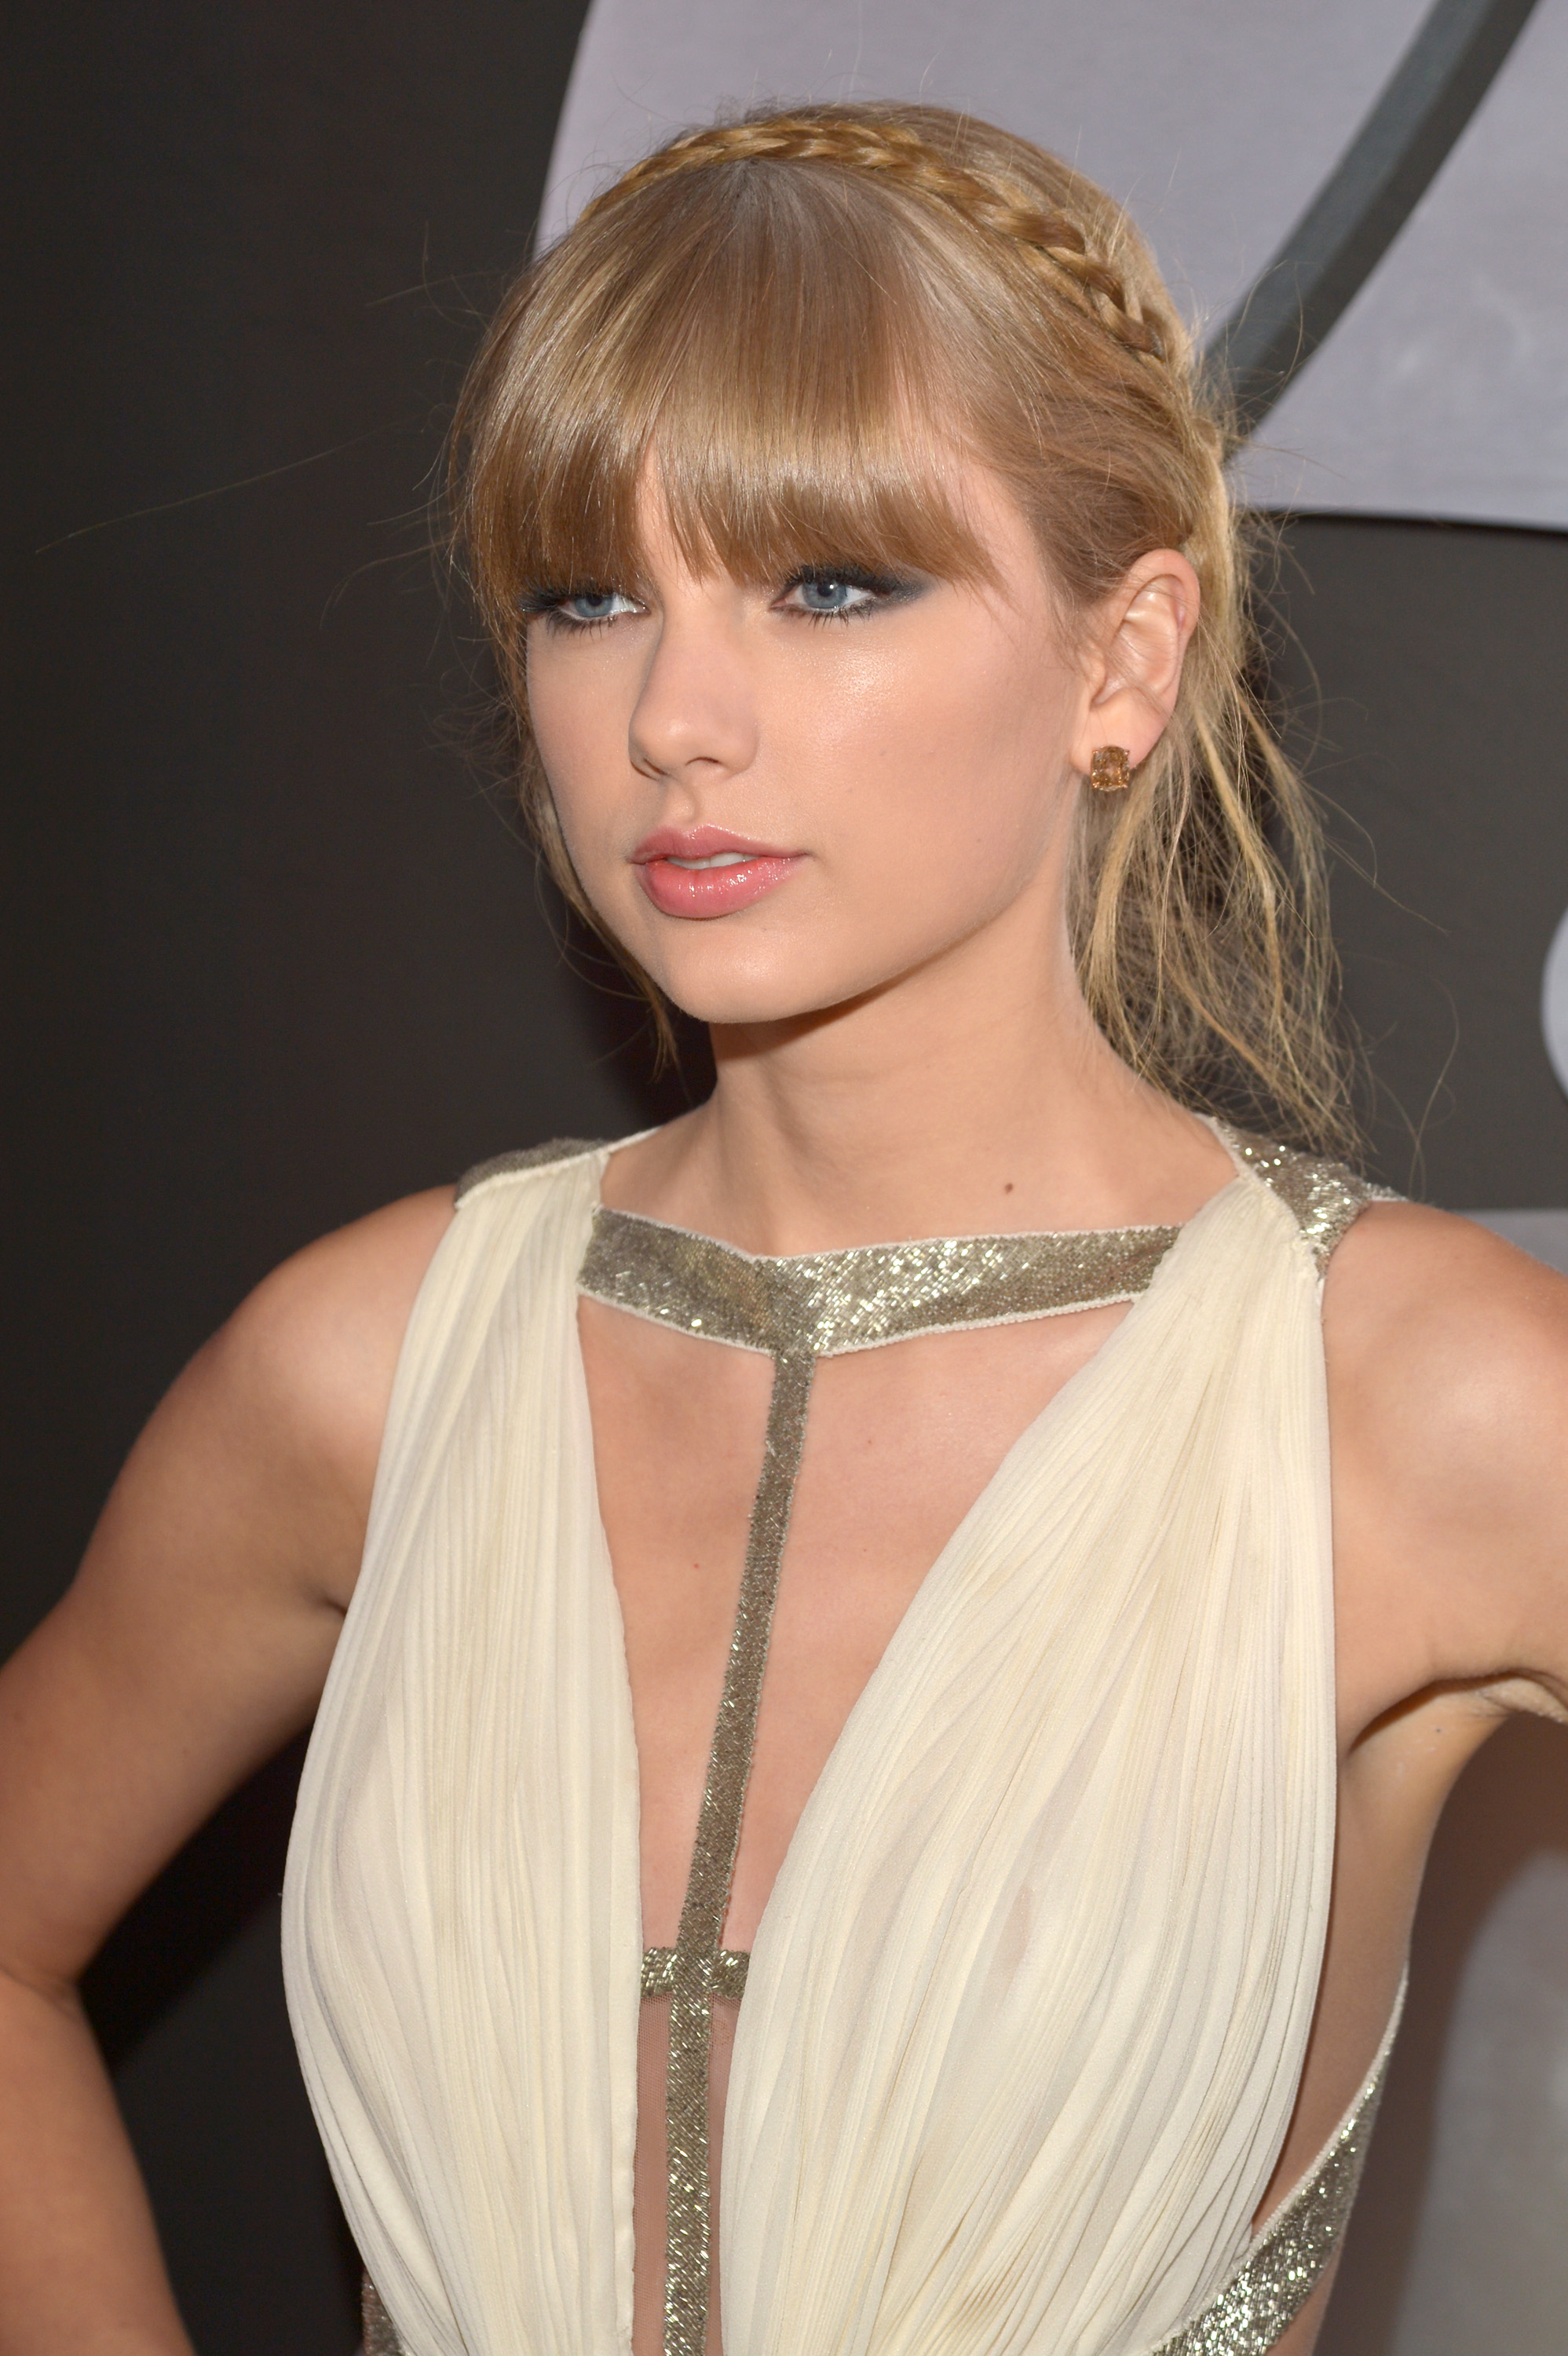 Taylor Swift wore a creamy J. Mendel gown to the Grammys.